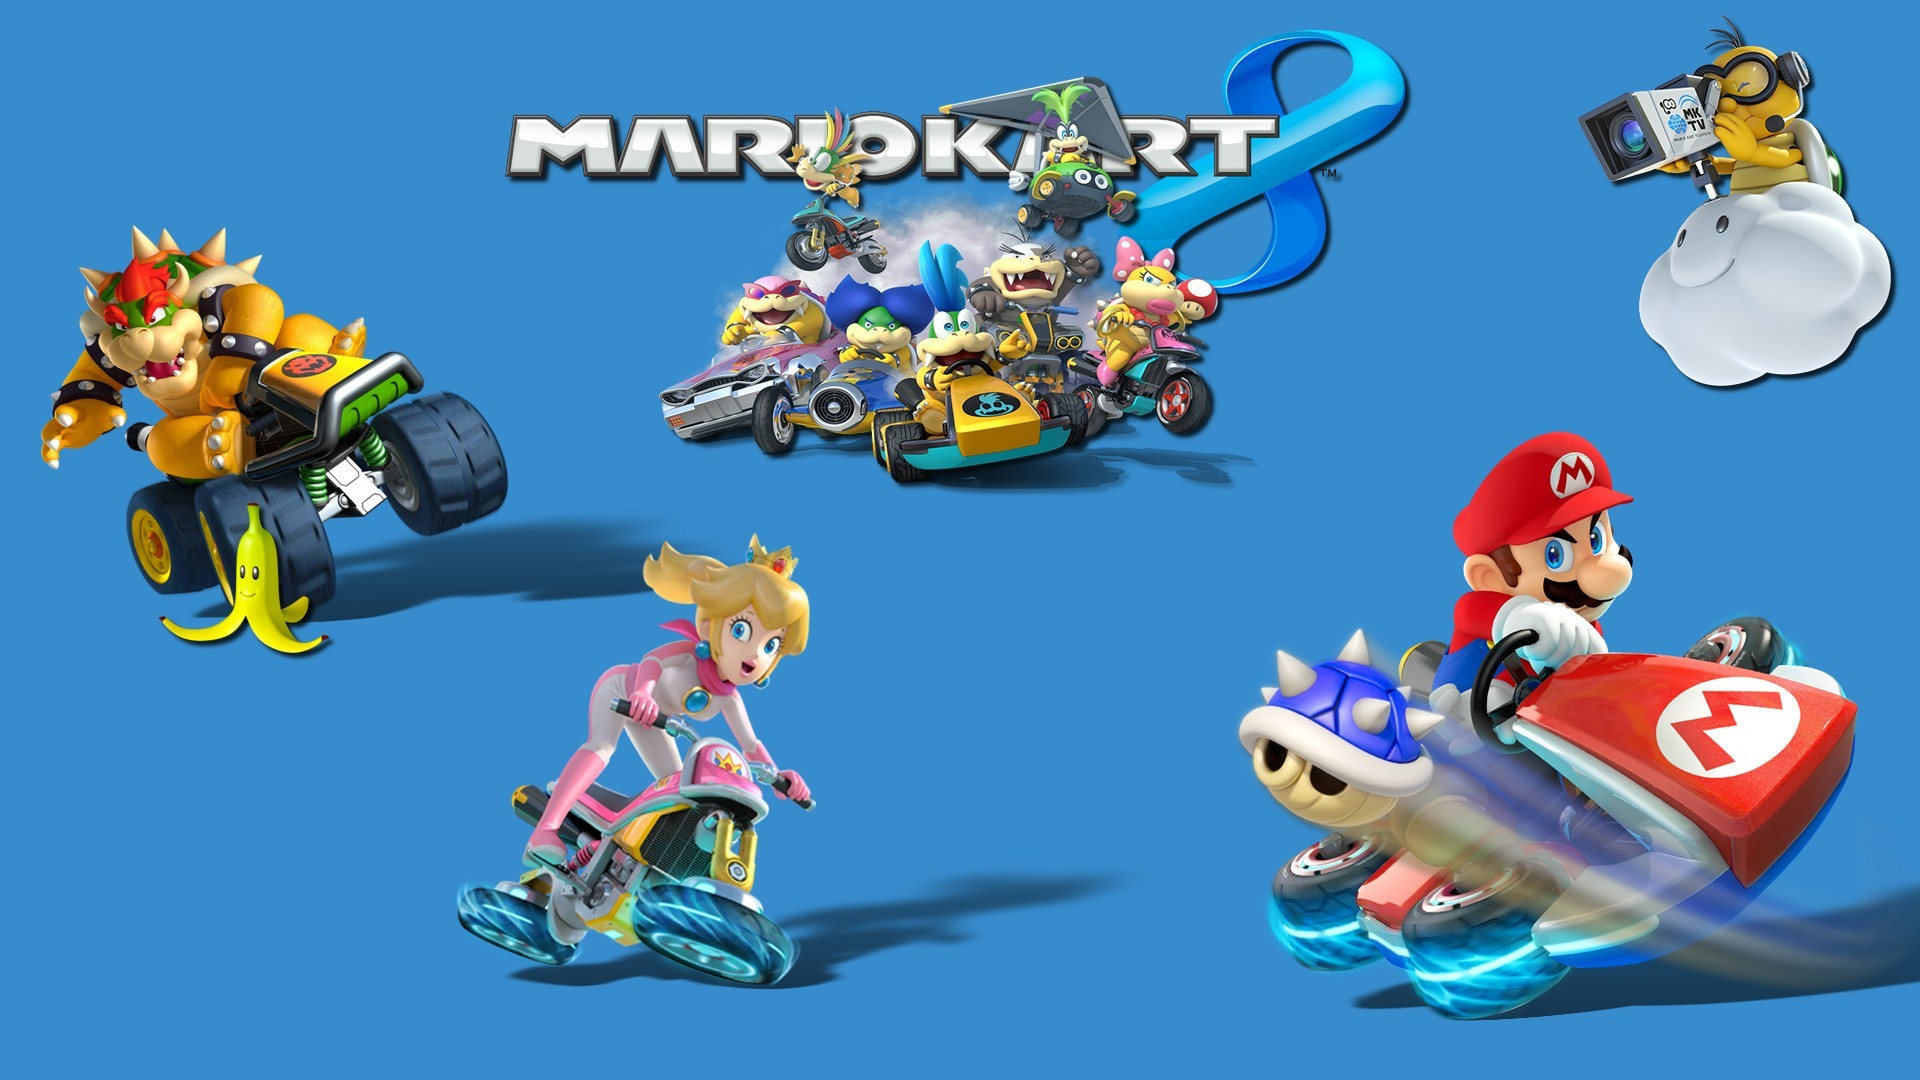 1920x1080 Mario Kart 8, Video Games, Toad (character), Mario Bros., Princess Peach, Nintendo  Wallpapers HD / Desktop and Mobile Backgrounds